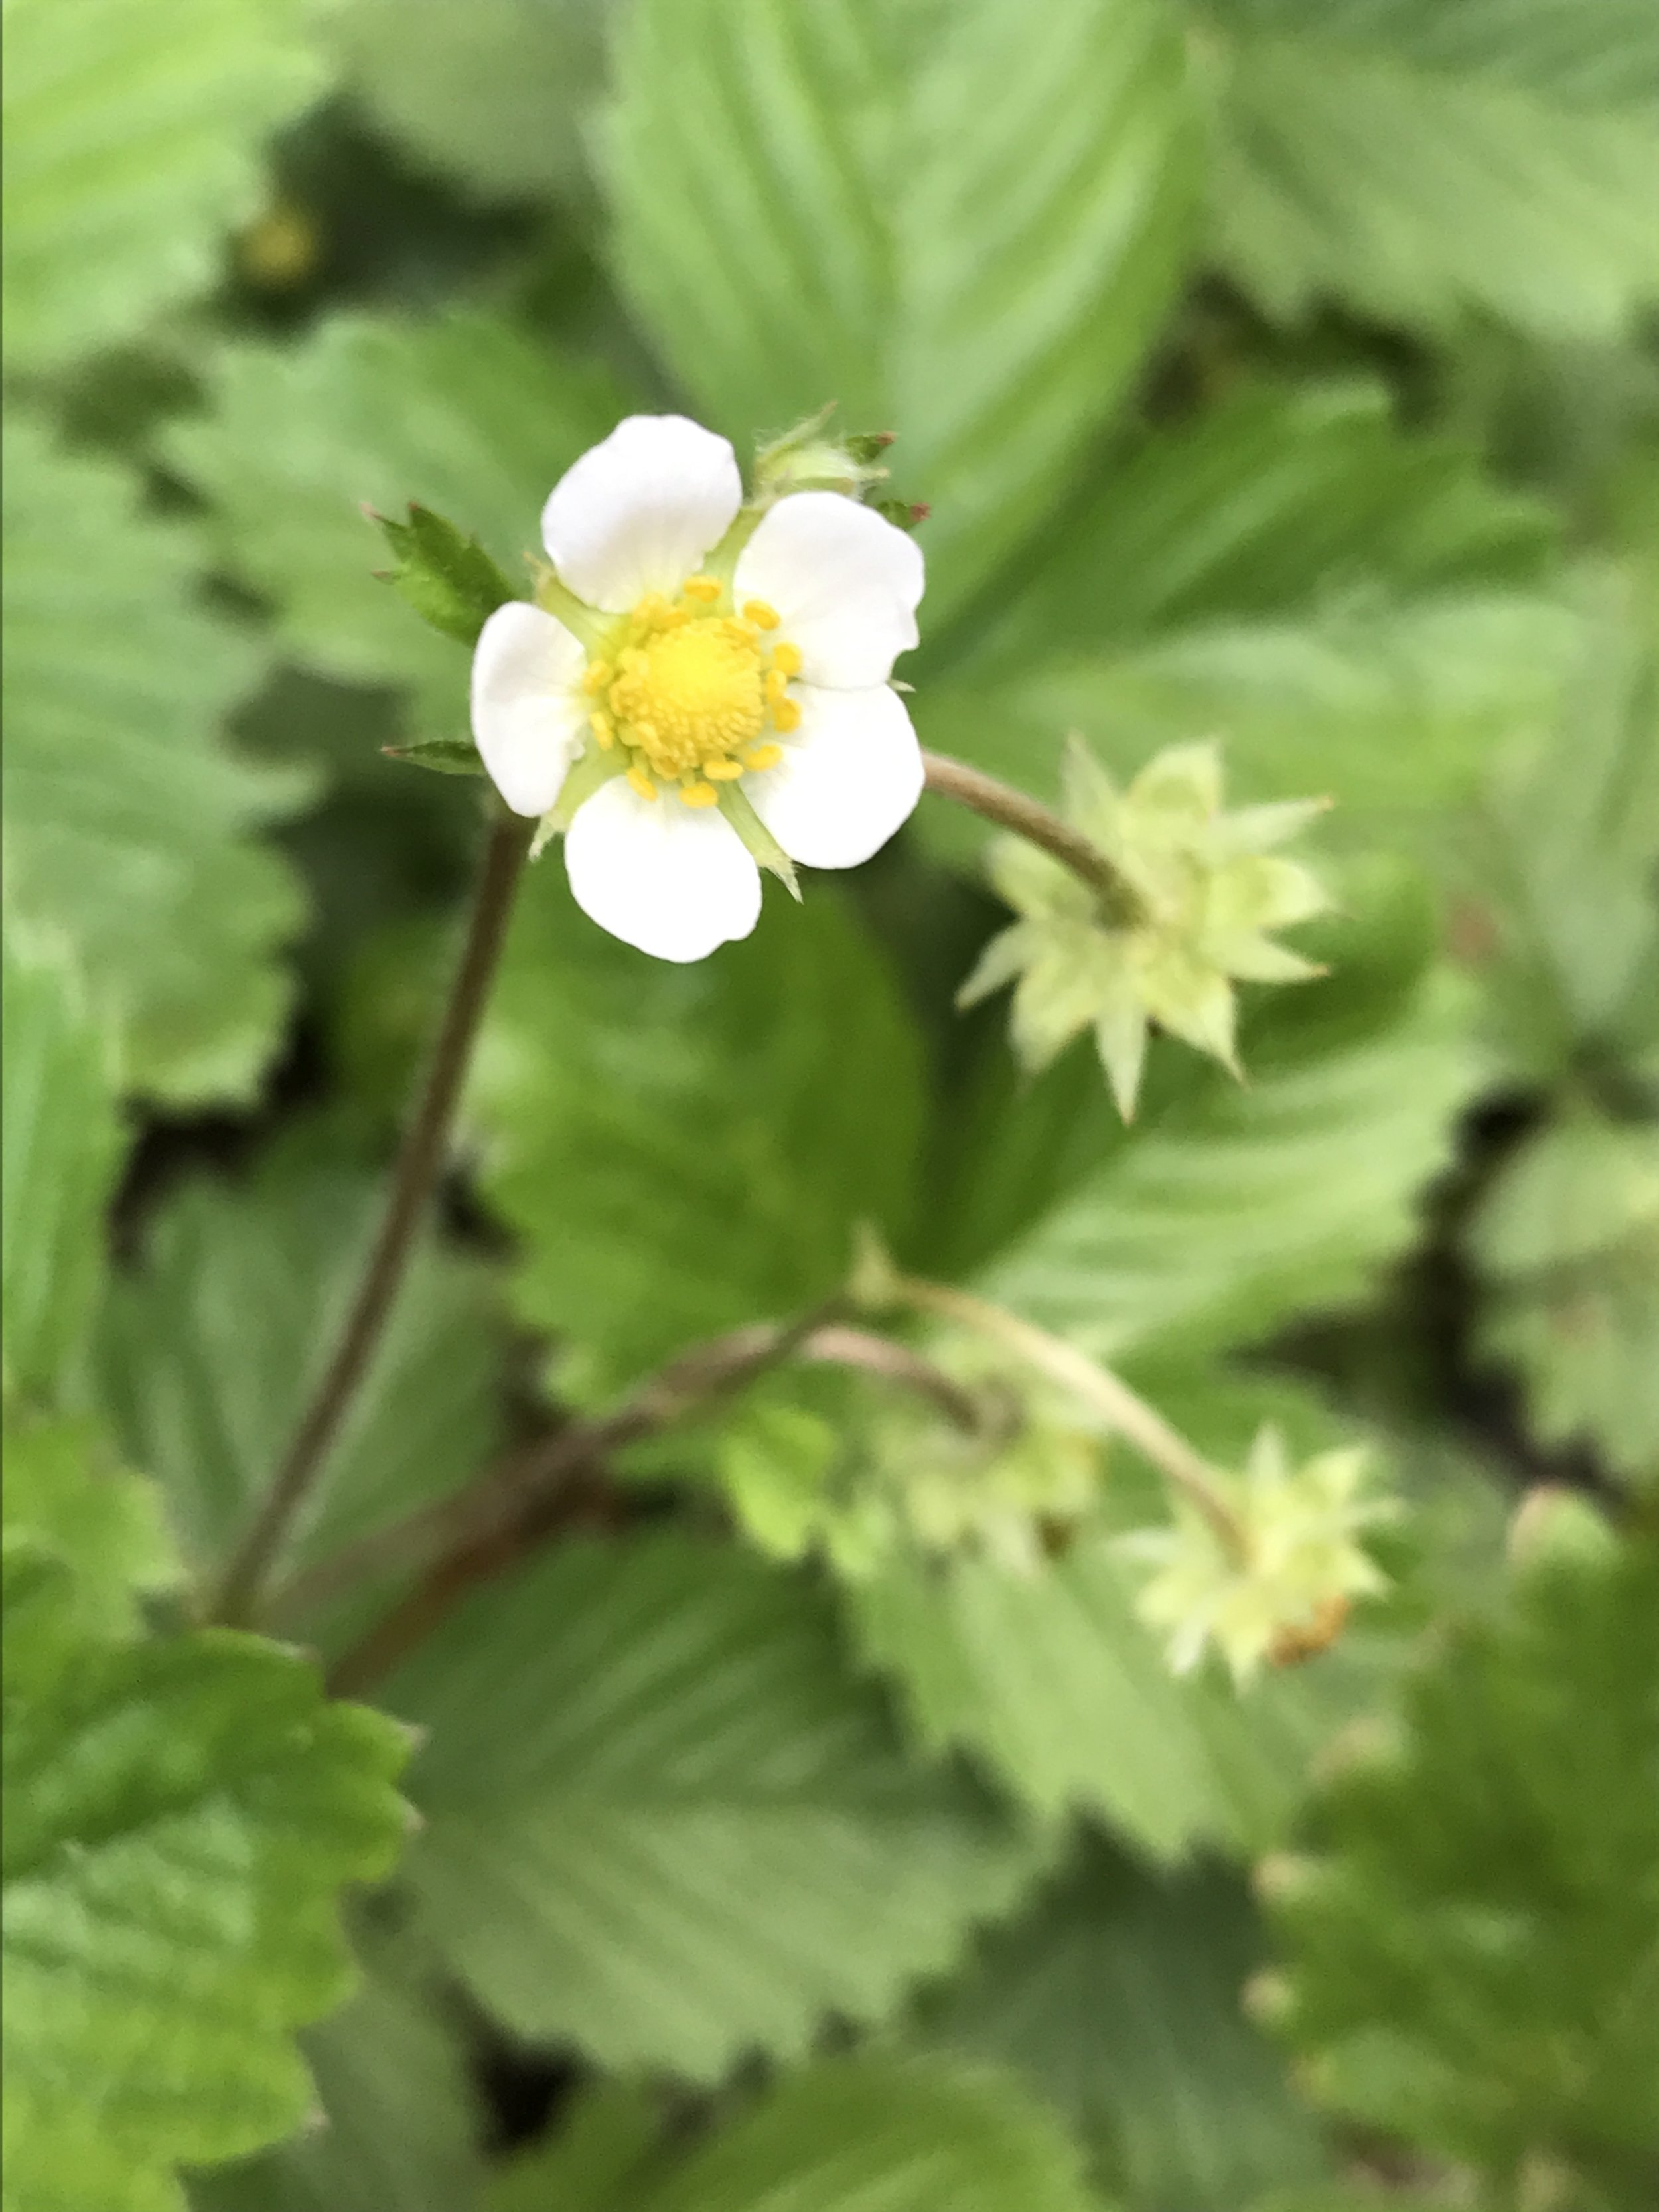 Alpine Strawberry Blossom.  Let the eating season begin!